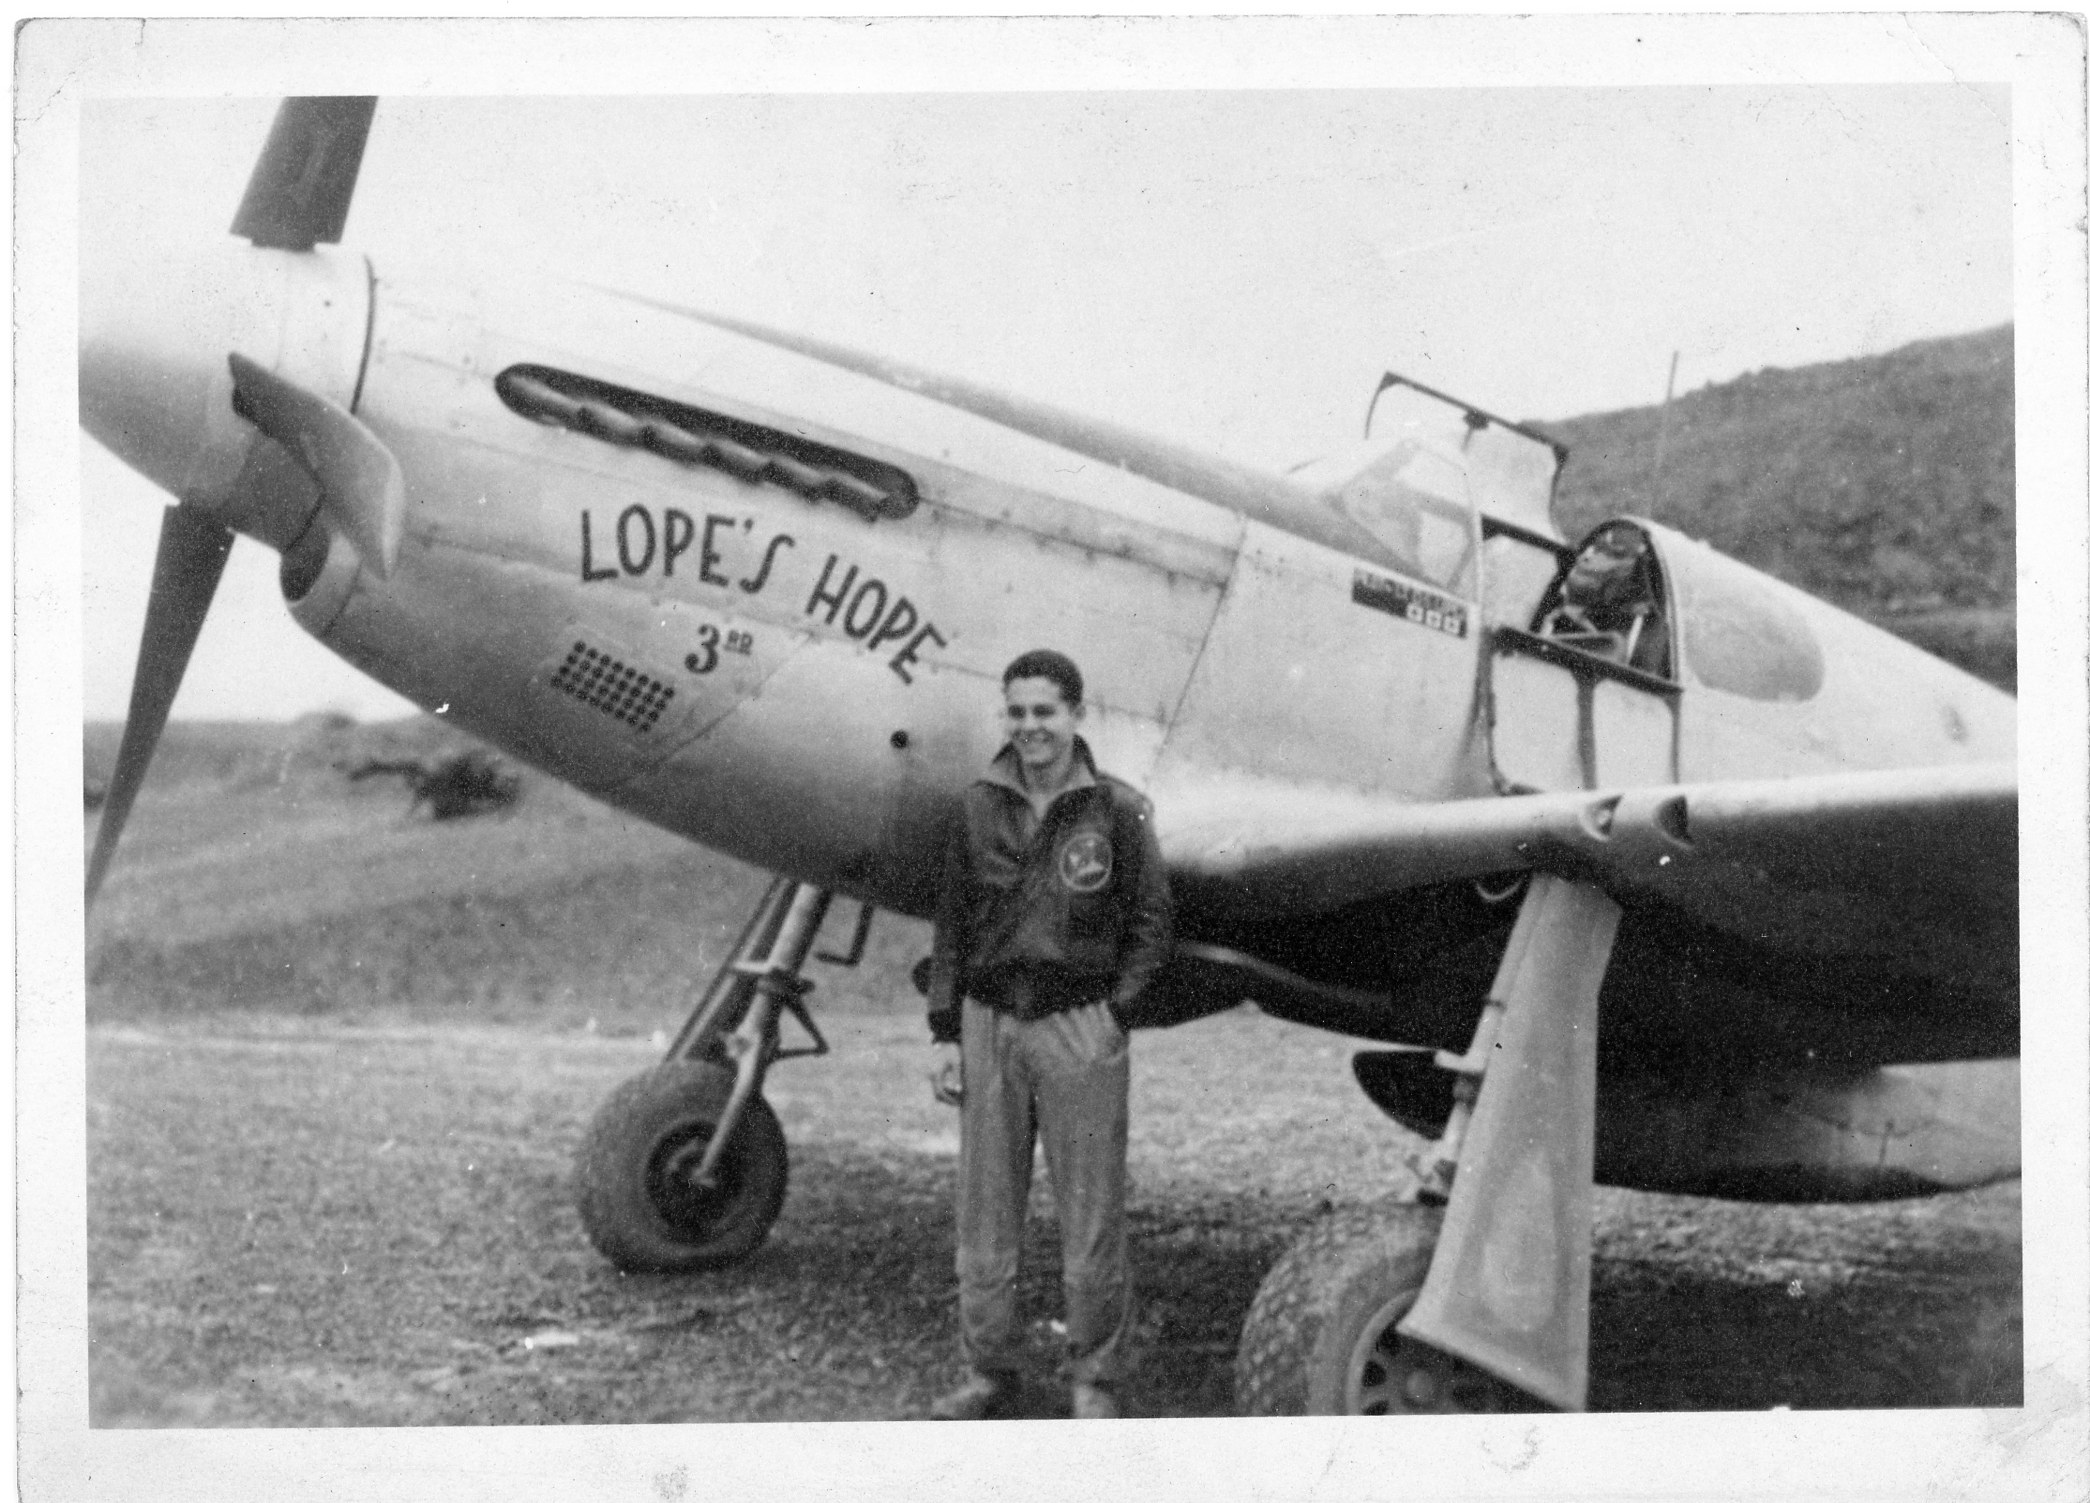 Lope's Hope Mustang from laura